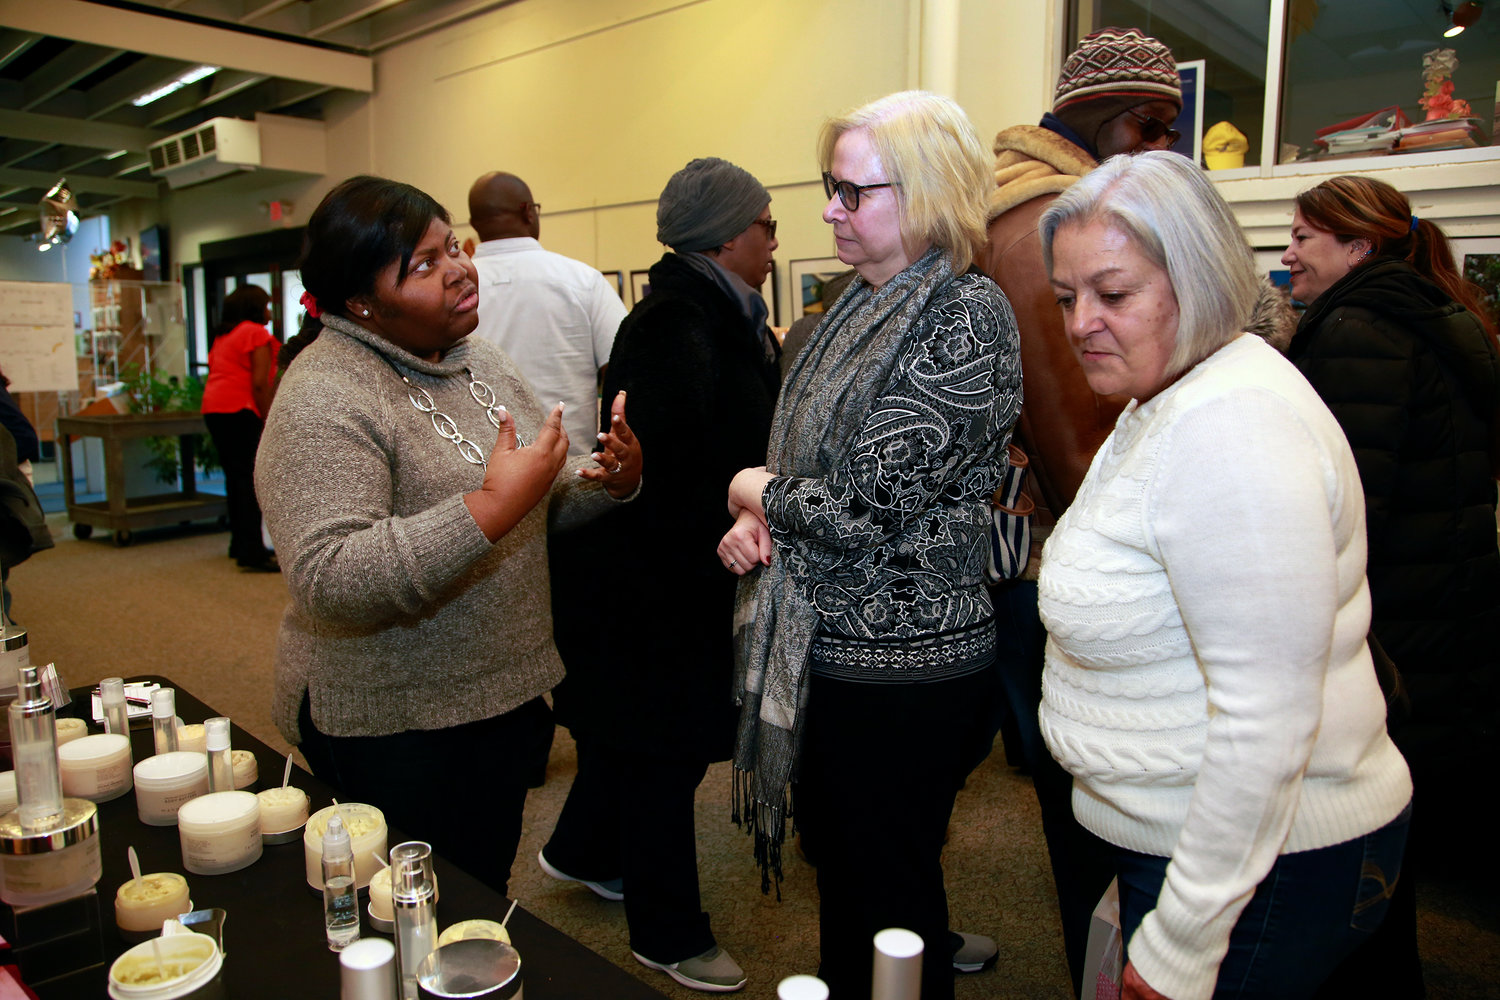 Owner of Sheago Cosmetics, Crystal Melton, left, talked to Pam Bond and Jan Heinlein, right, about her products.